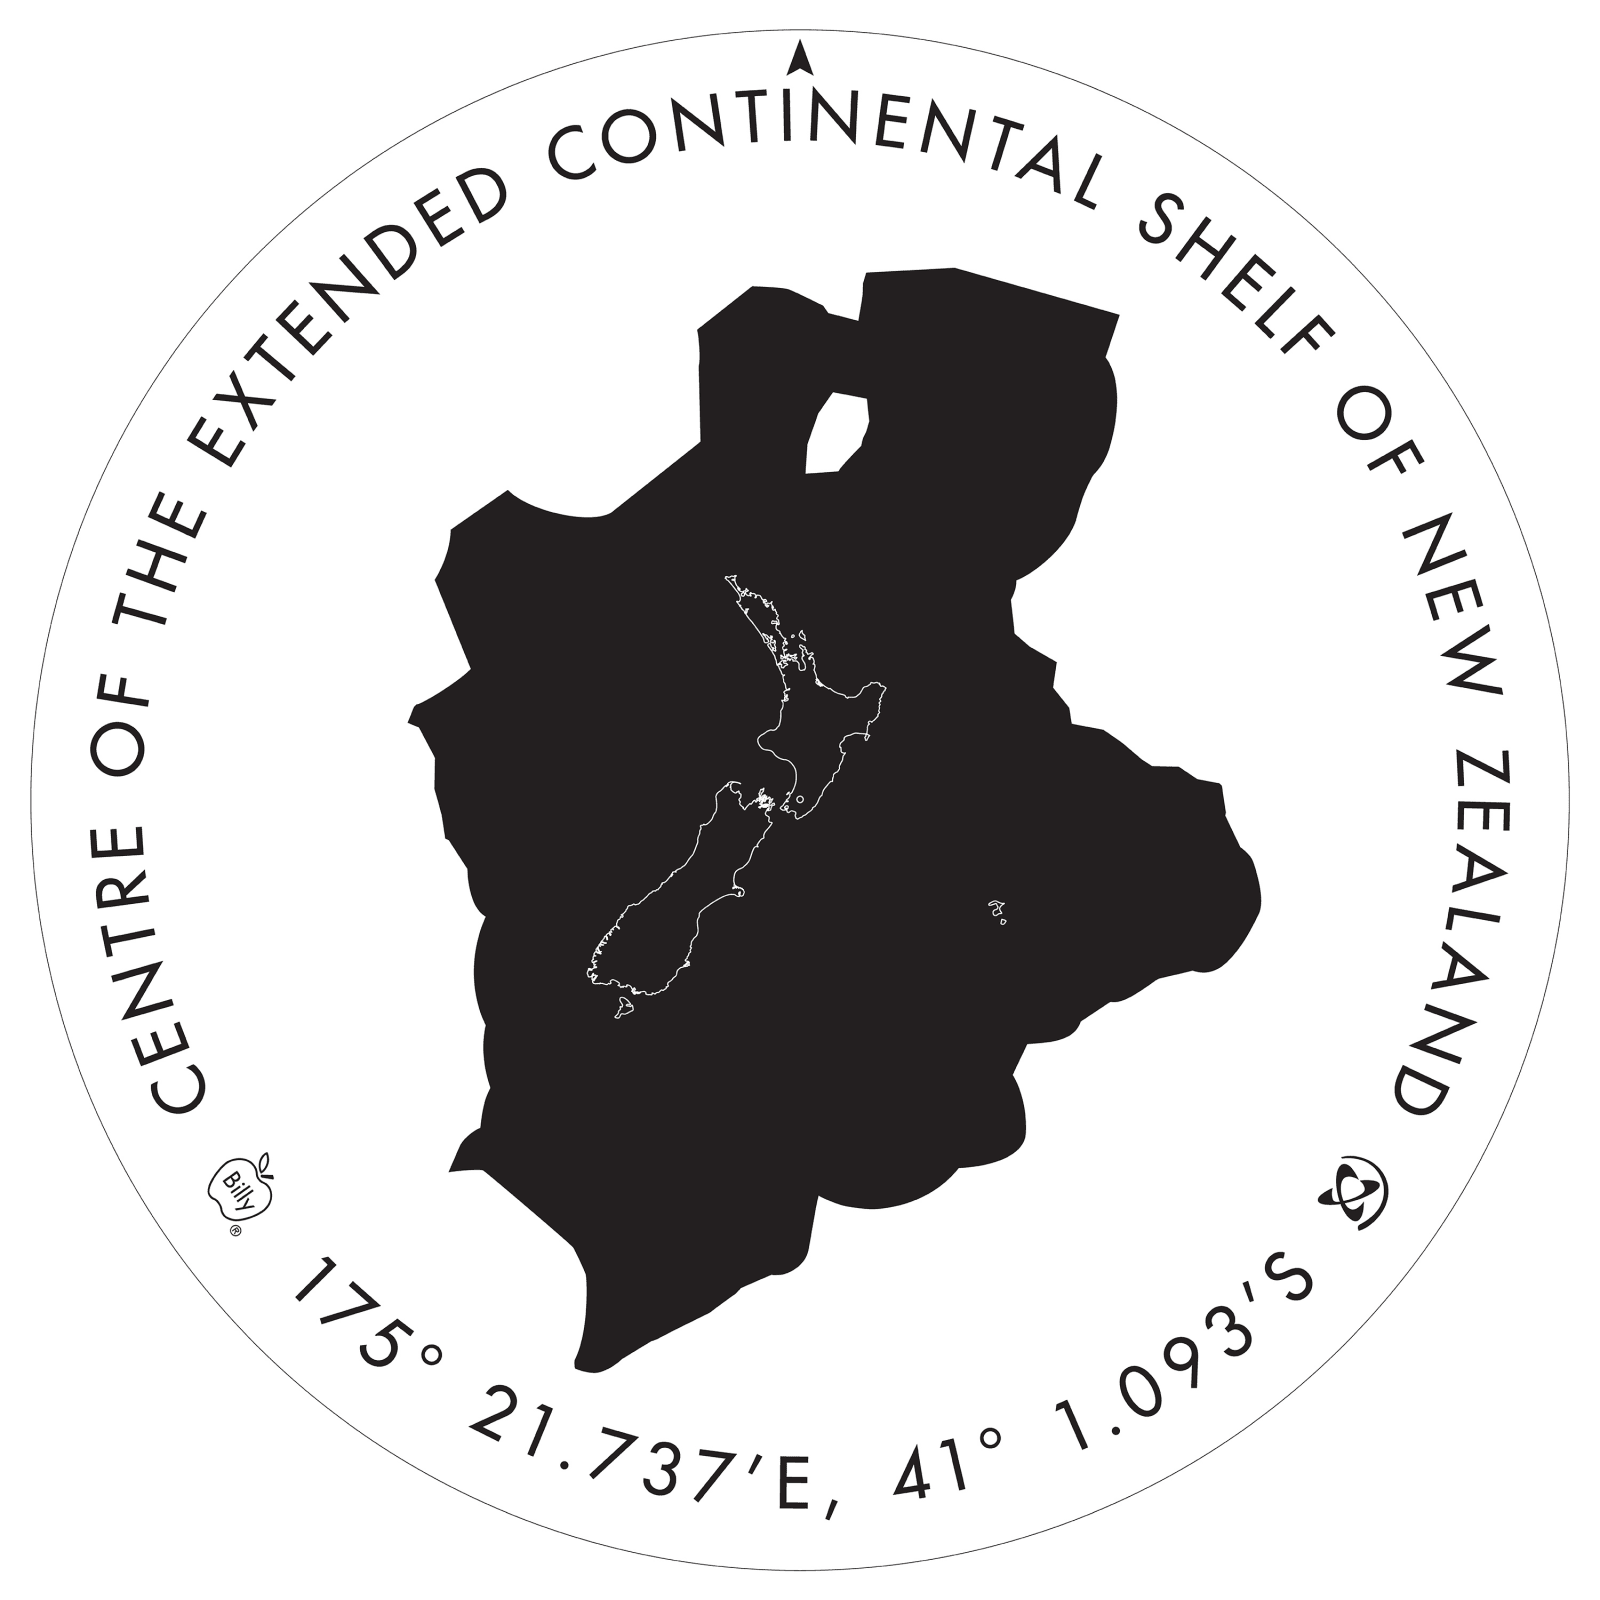 Artwork showing the outline of the underwater continent, New Zealand and the point that marks the centre